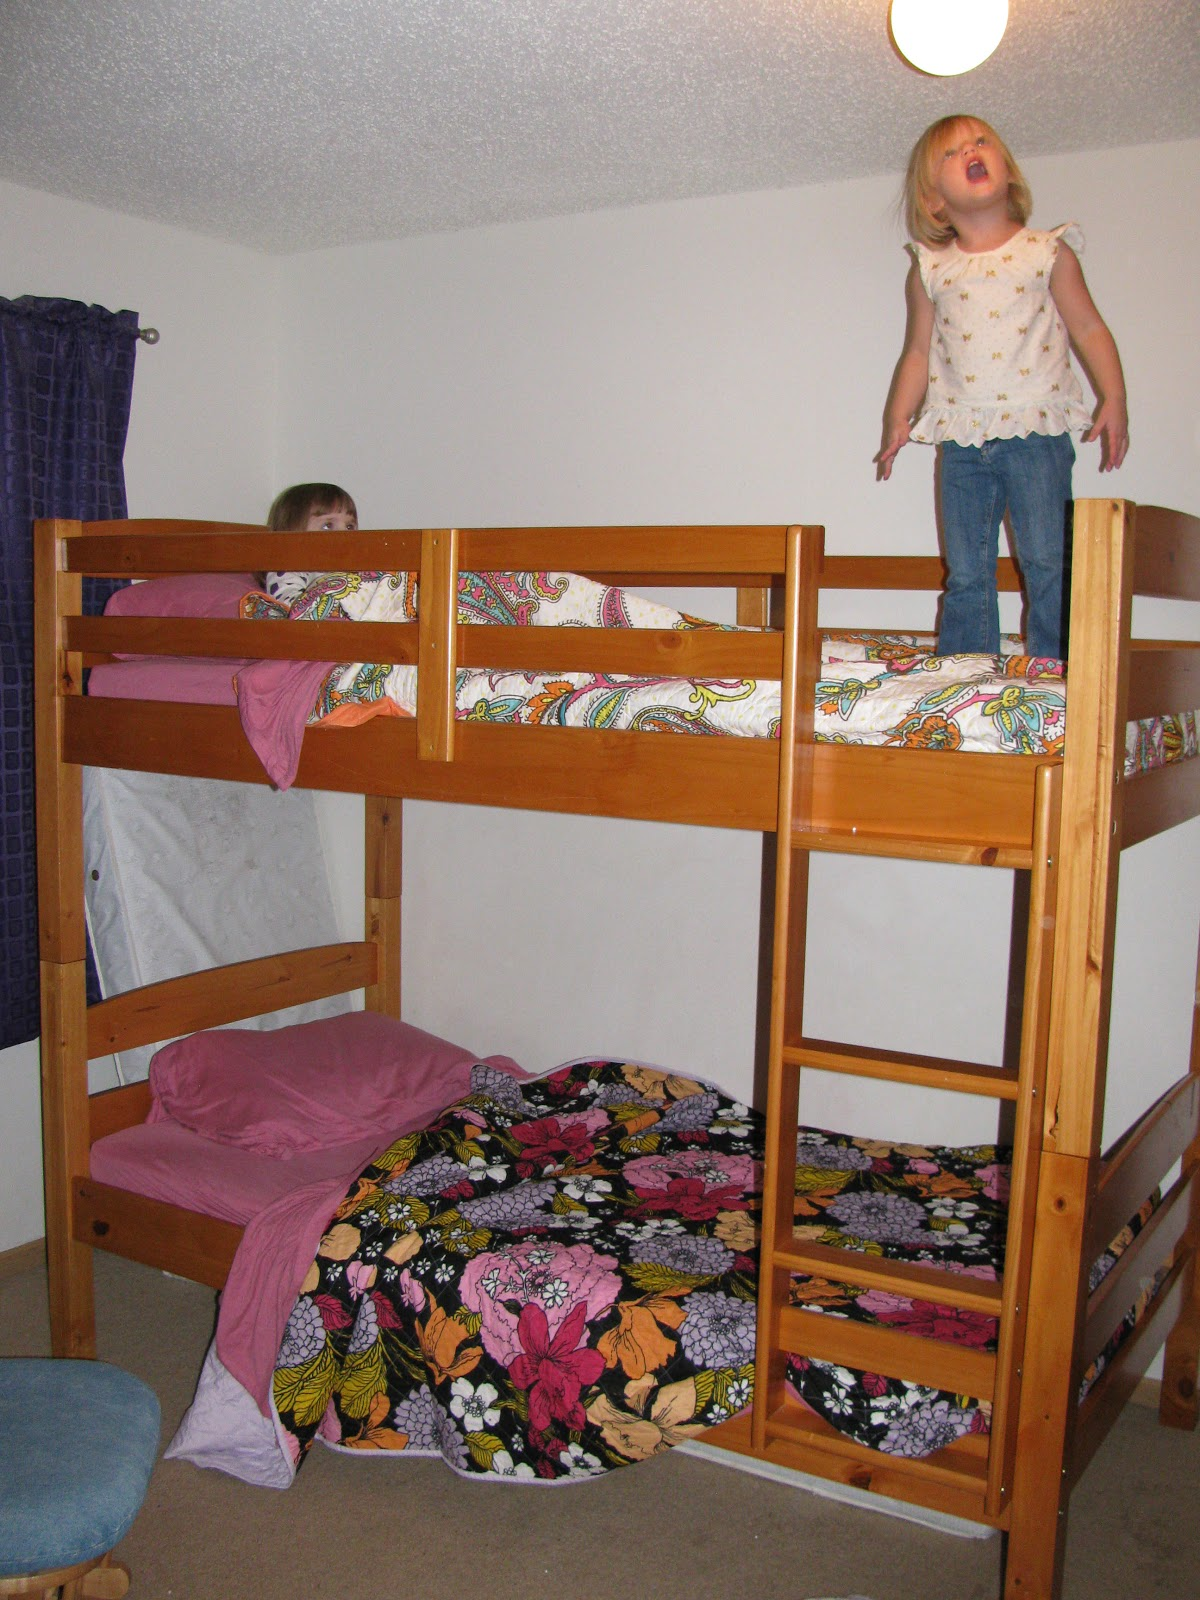 10 Tips For Selecting The Best Bunk Bed For Your Kids